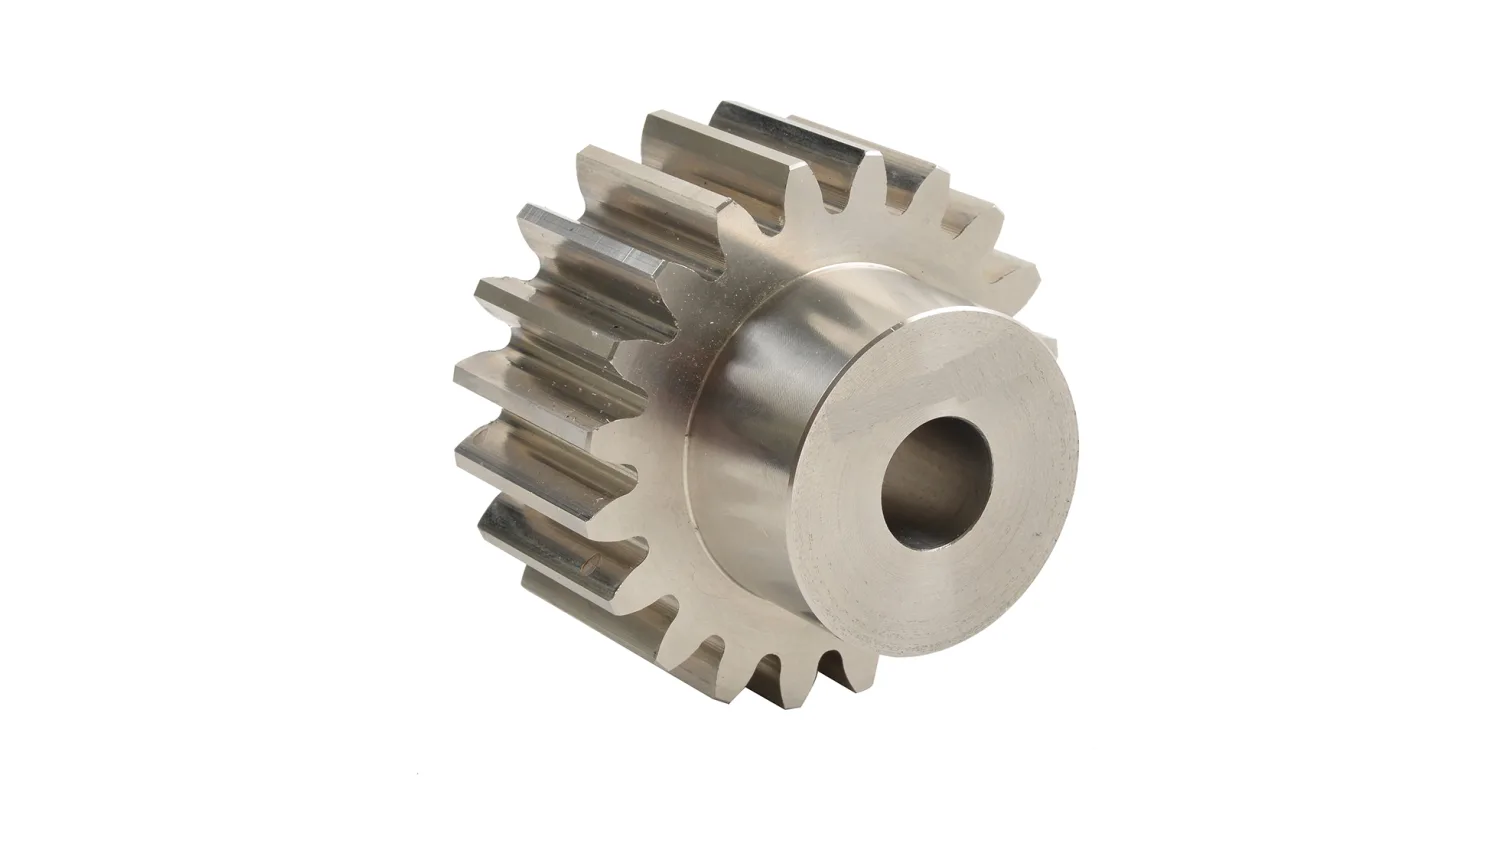 0-8-Mod-x-60-Tooth-Metric-Spur-Gear-in-Steel